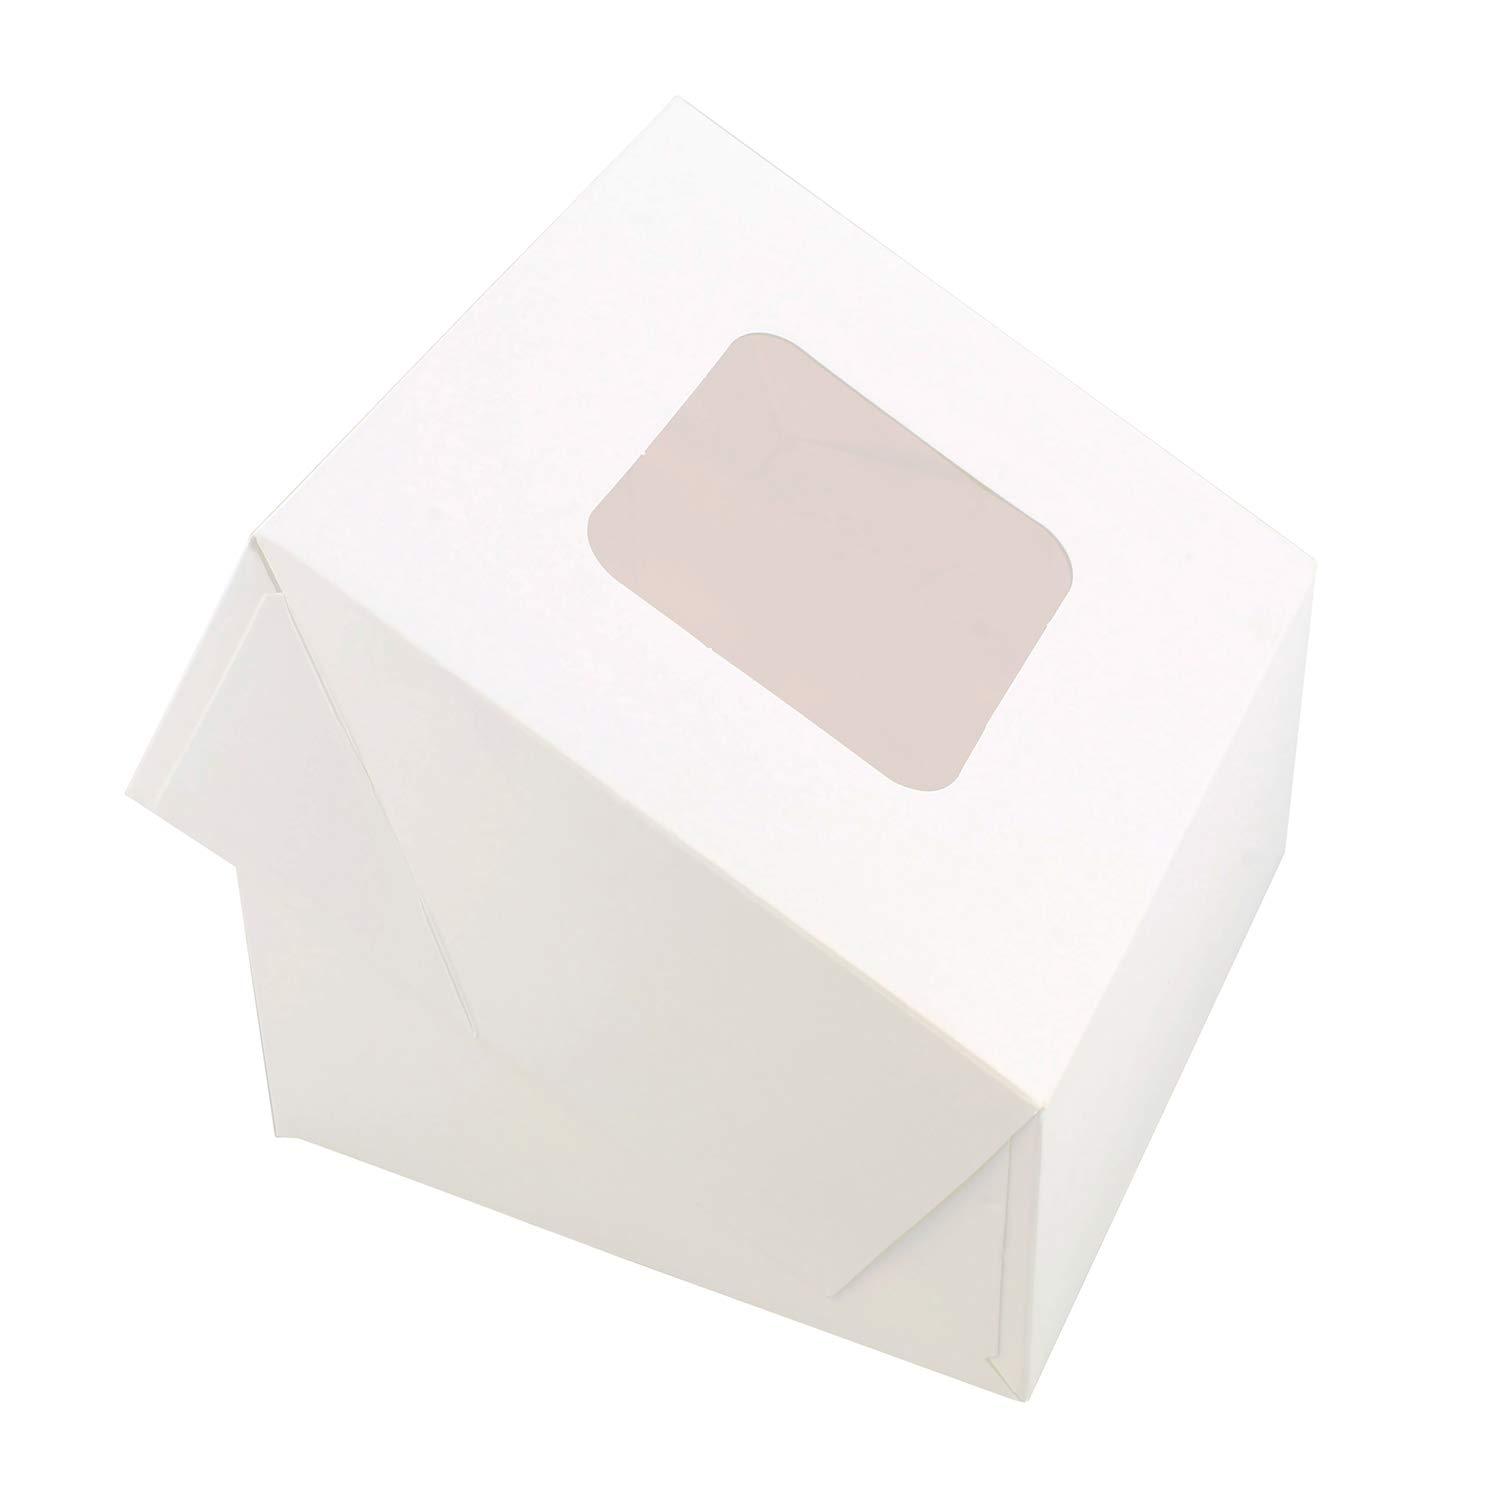 SpecialT White Bakery Boxes with Window, 200pk - 6'' x 6'' Inch Cake Boxes, Party Favor Boxes, Candy Boxes, Dessert Boxes by SpecialT (Image #3)